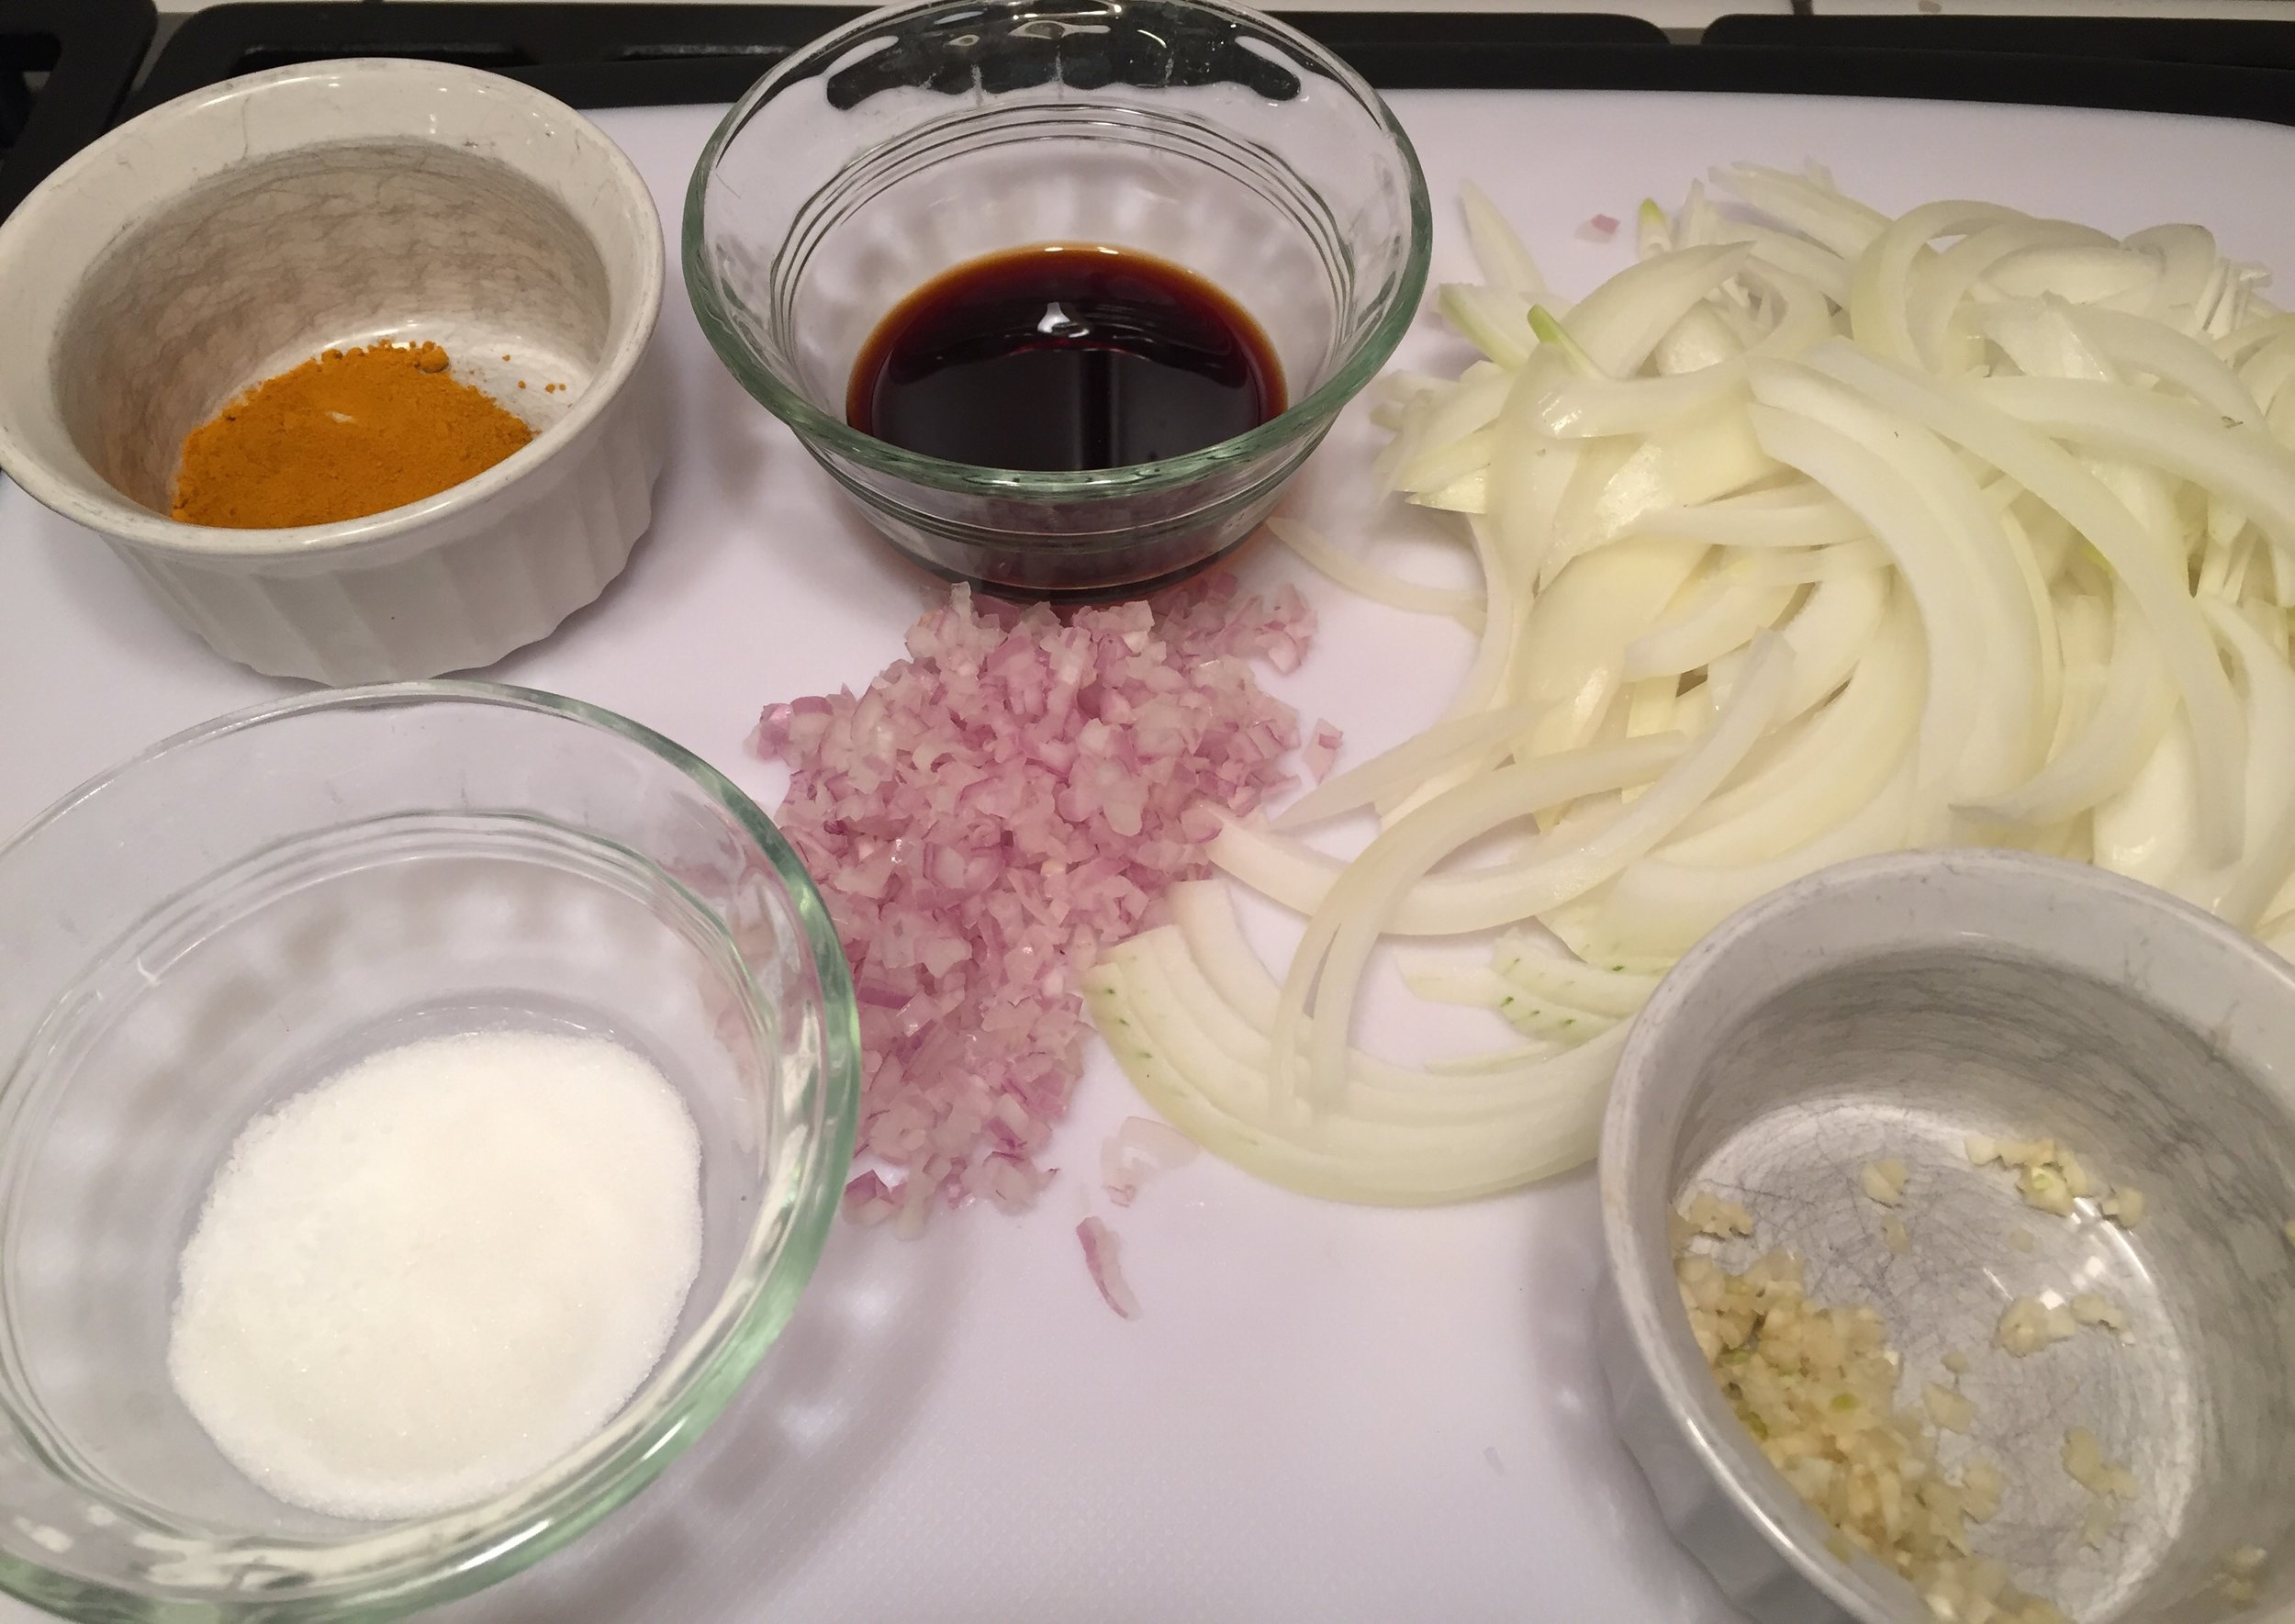 tumeic, soy sauce and sugar for the marinade., Onions shallots and garlic for a saucepan.